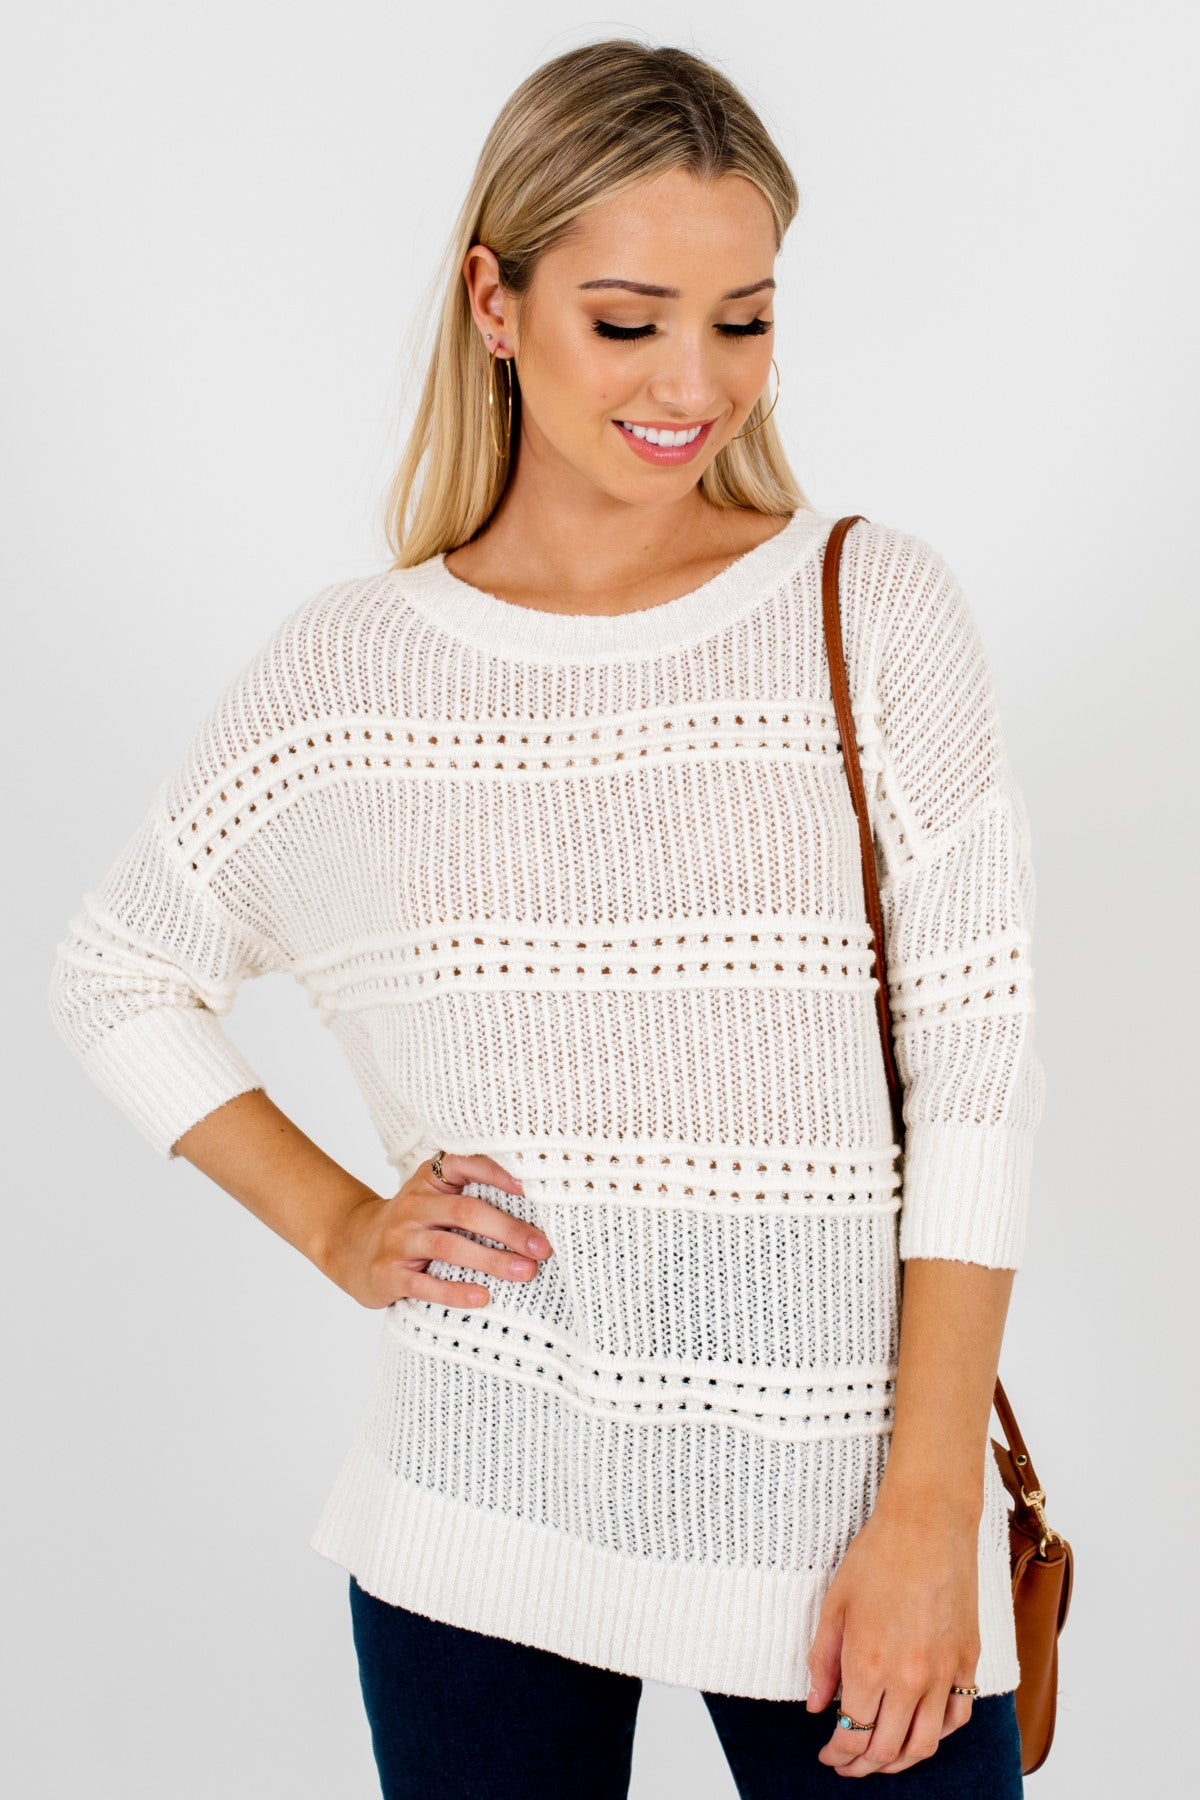 Cream Knit Sweaters Affordable Online Boutique Fashion for Women